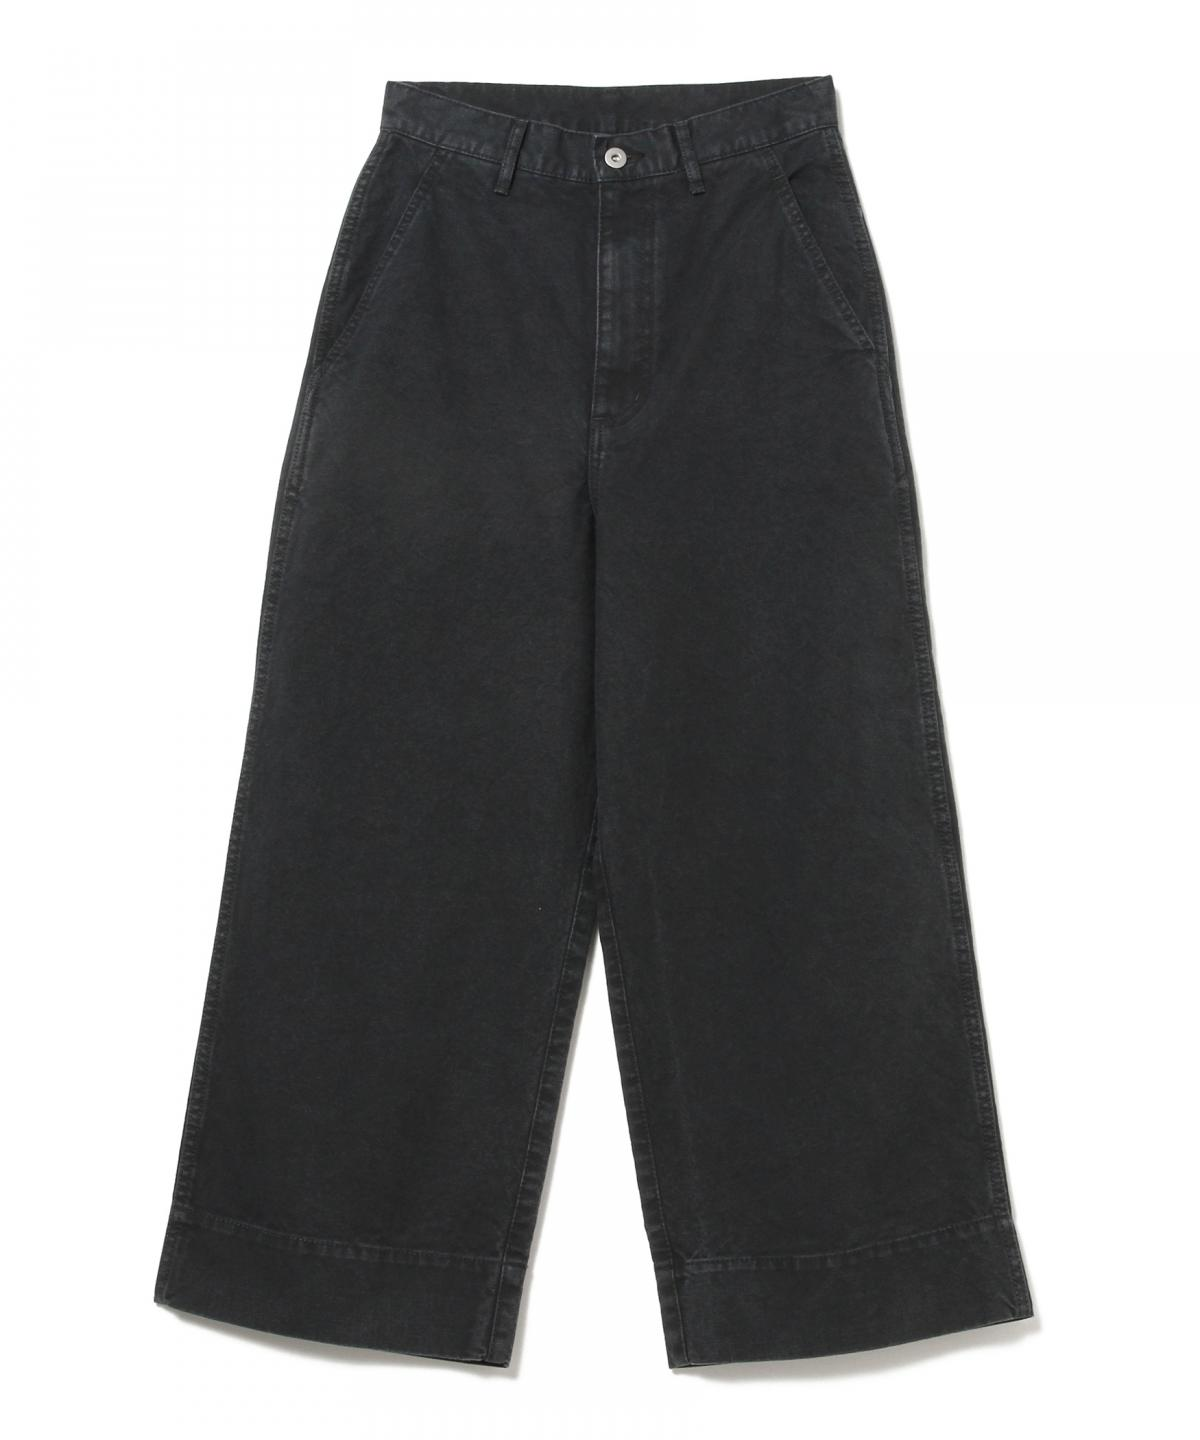 SHERRY High Waist Pant